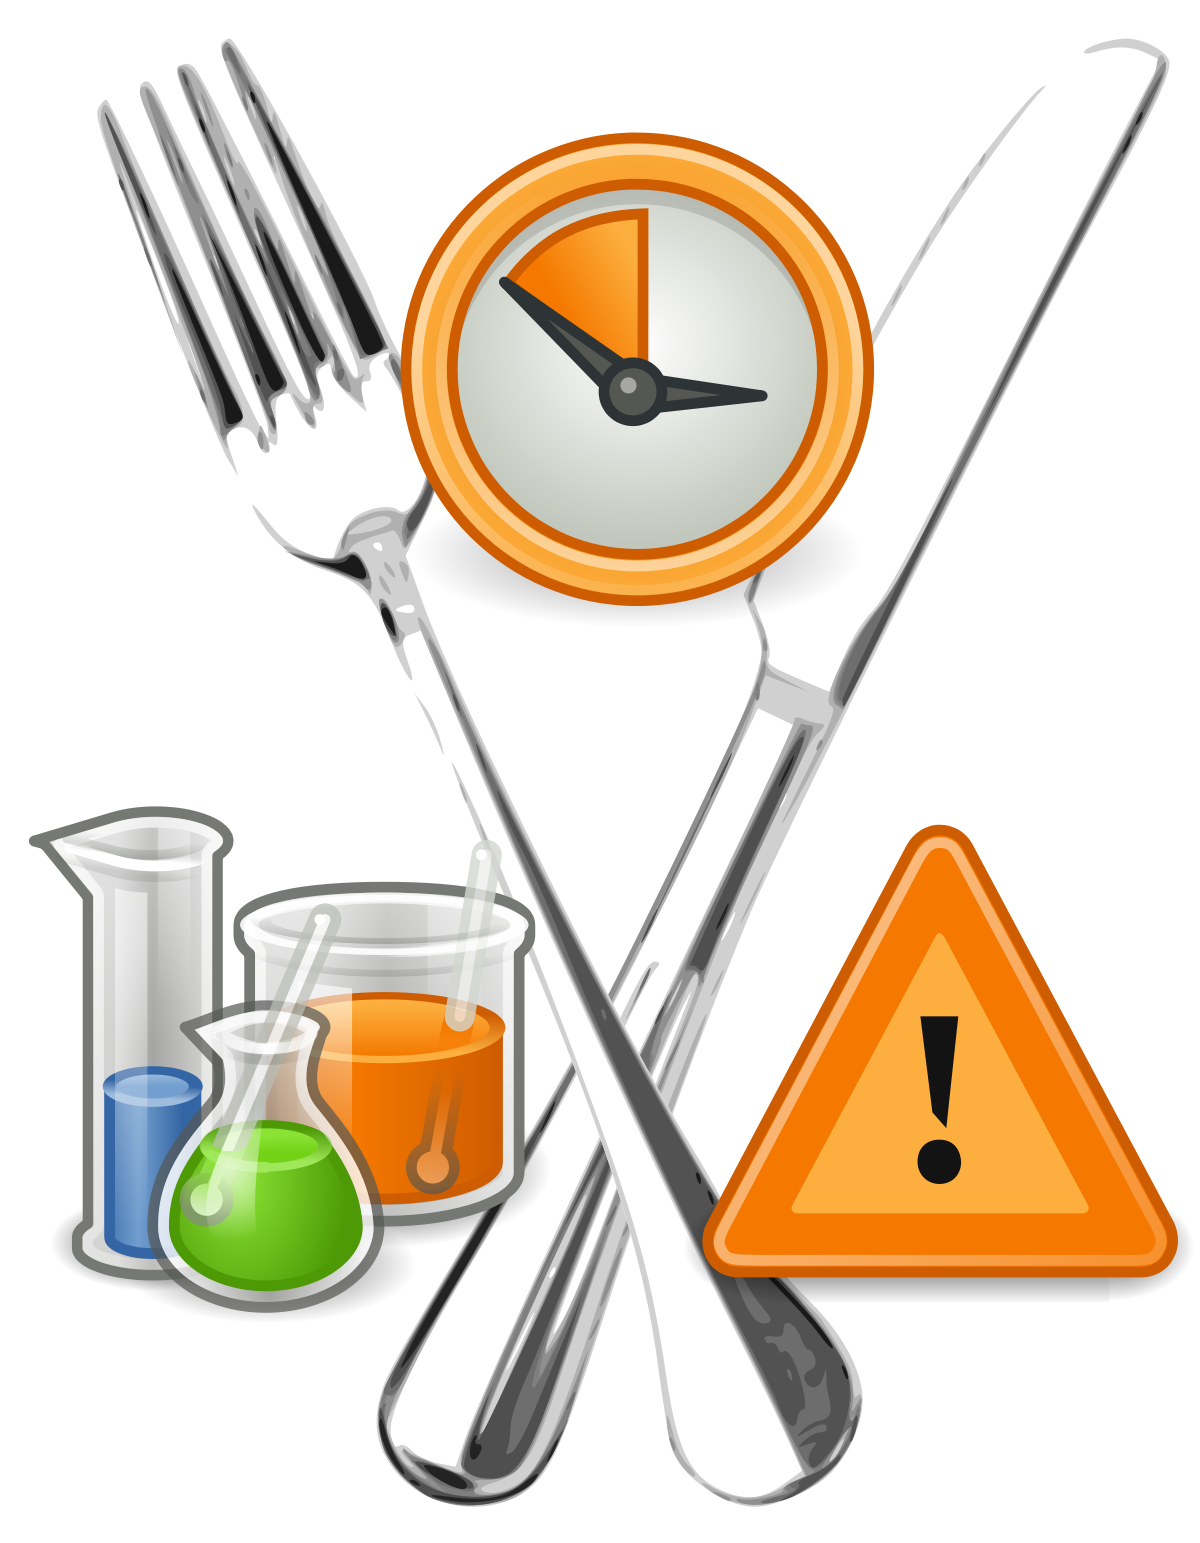 Restaurants clipart grocery store building. Food safety wikipedia